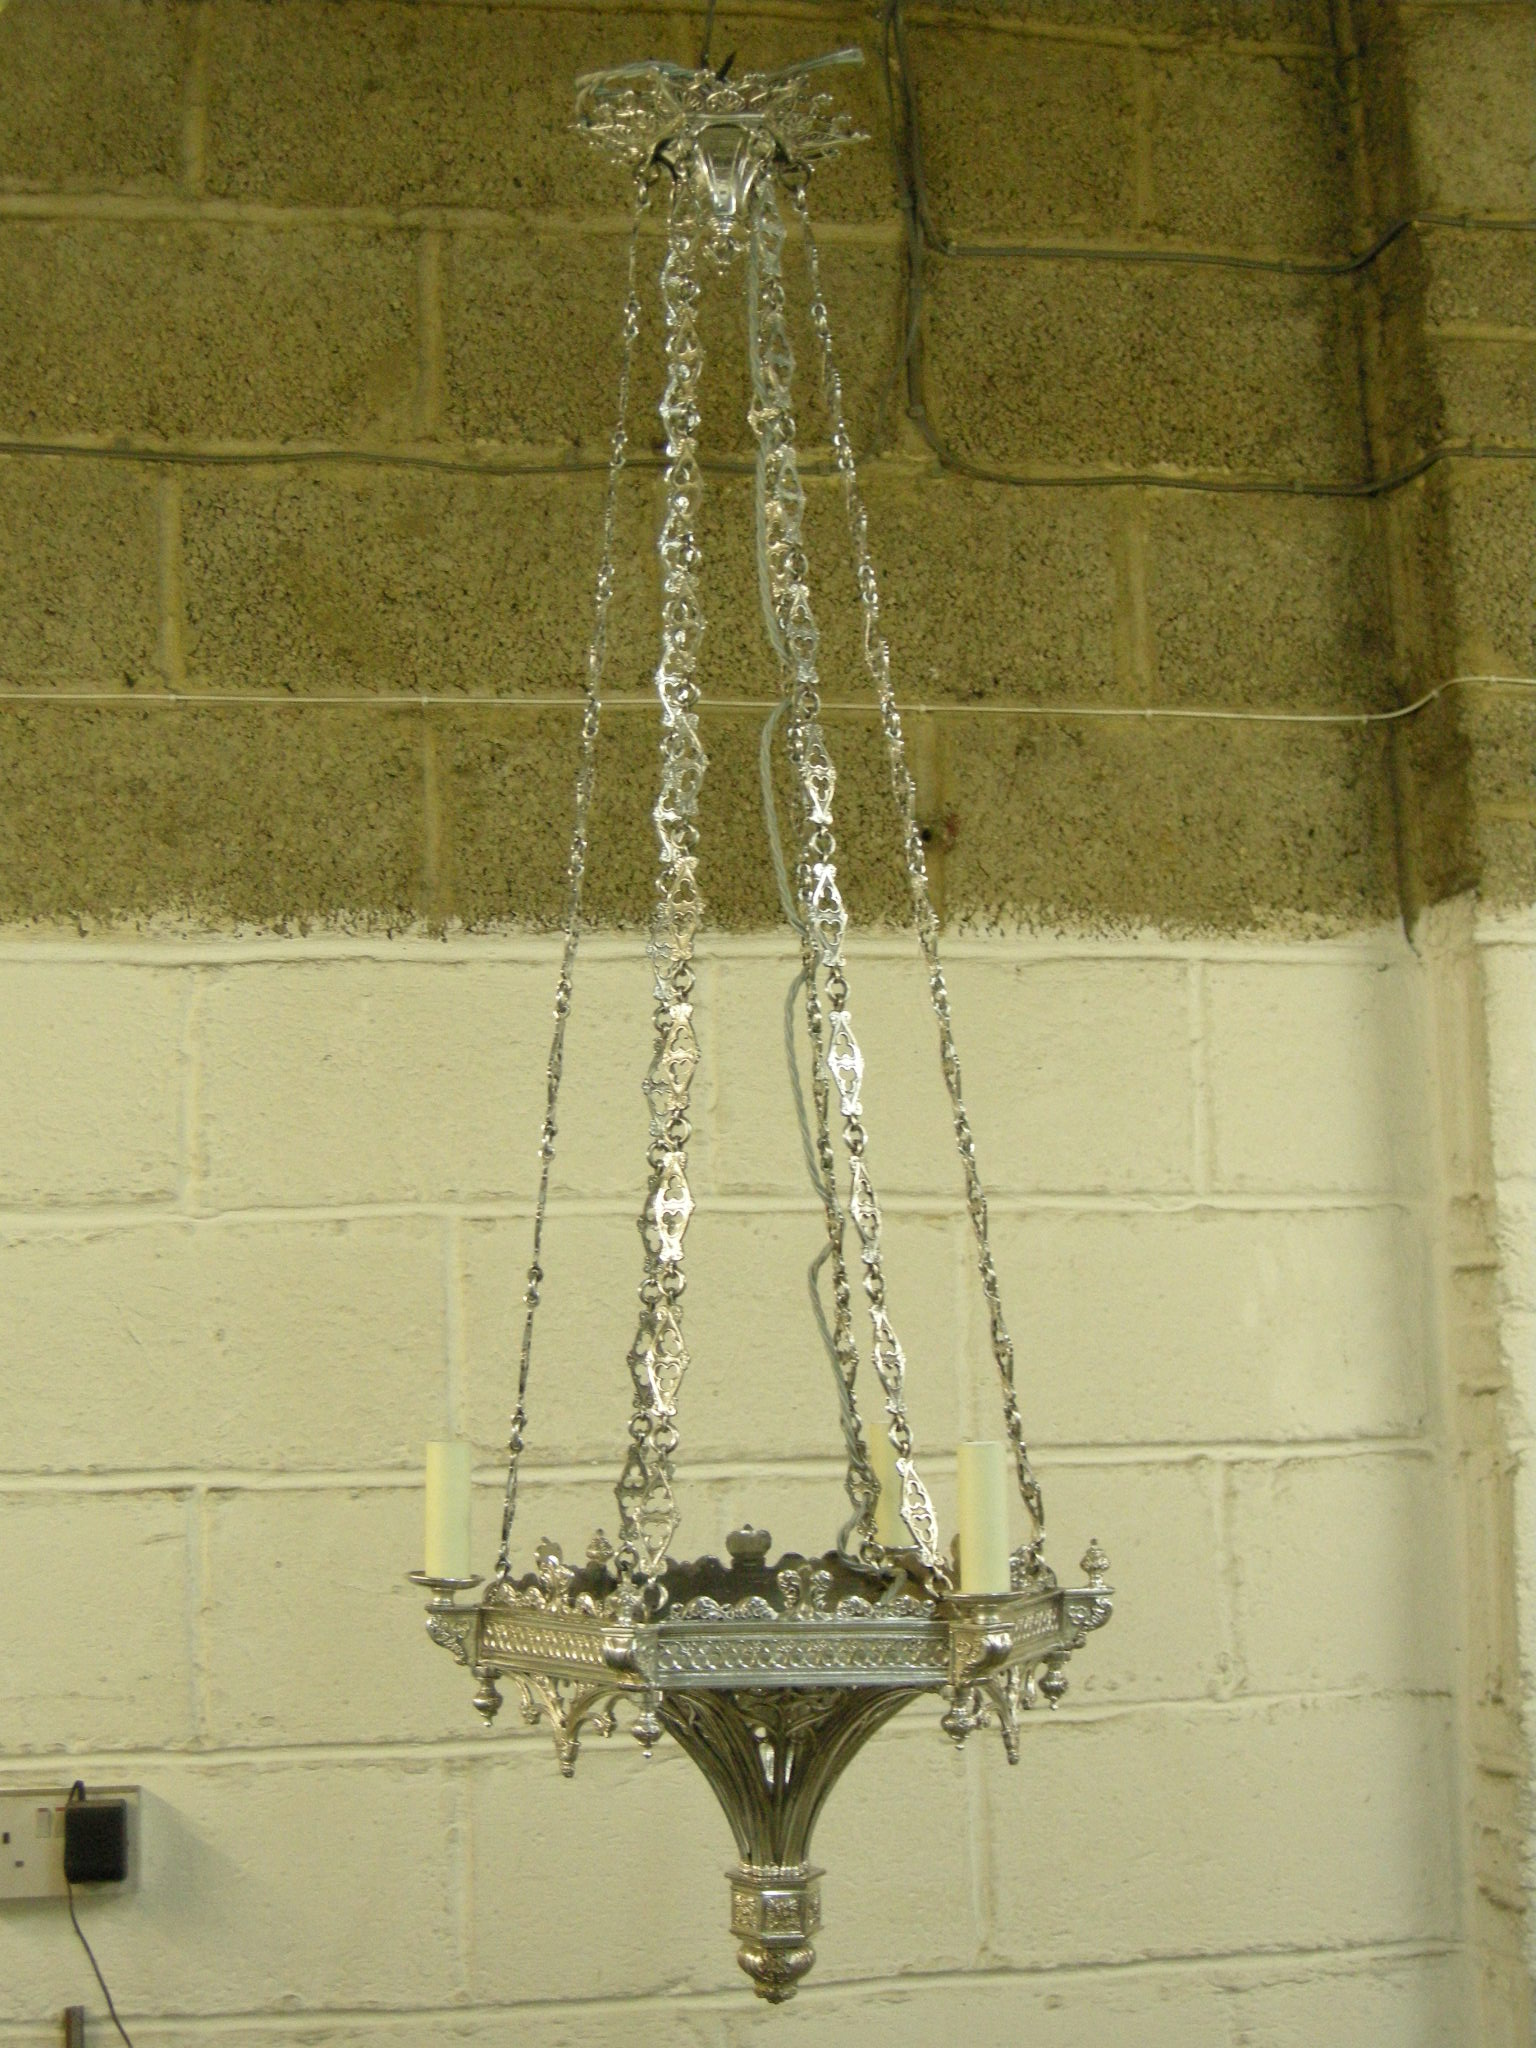 Silver pendent chandelier after